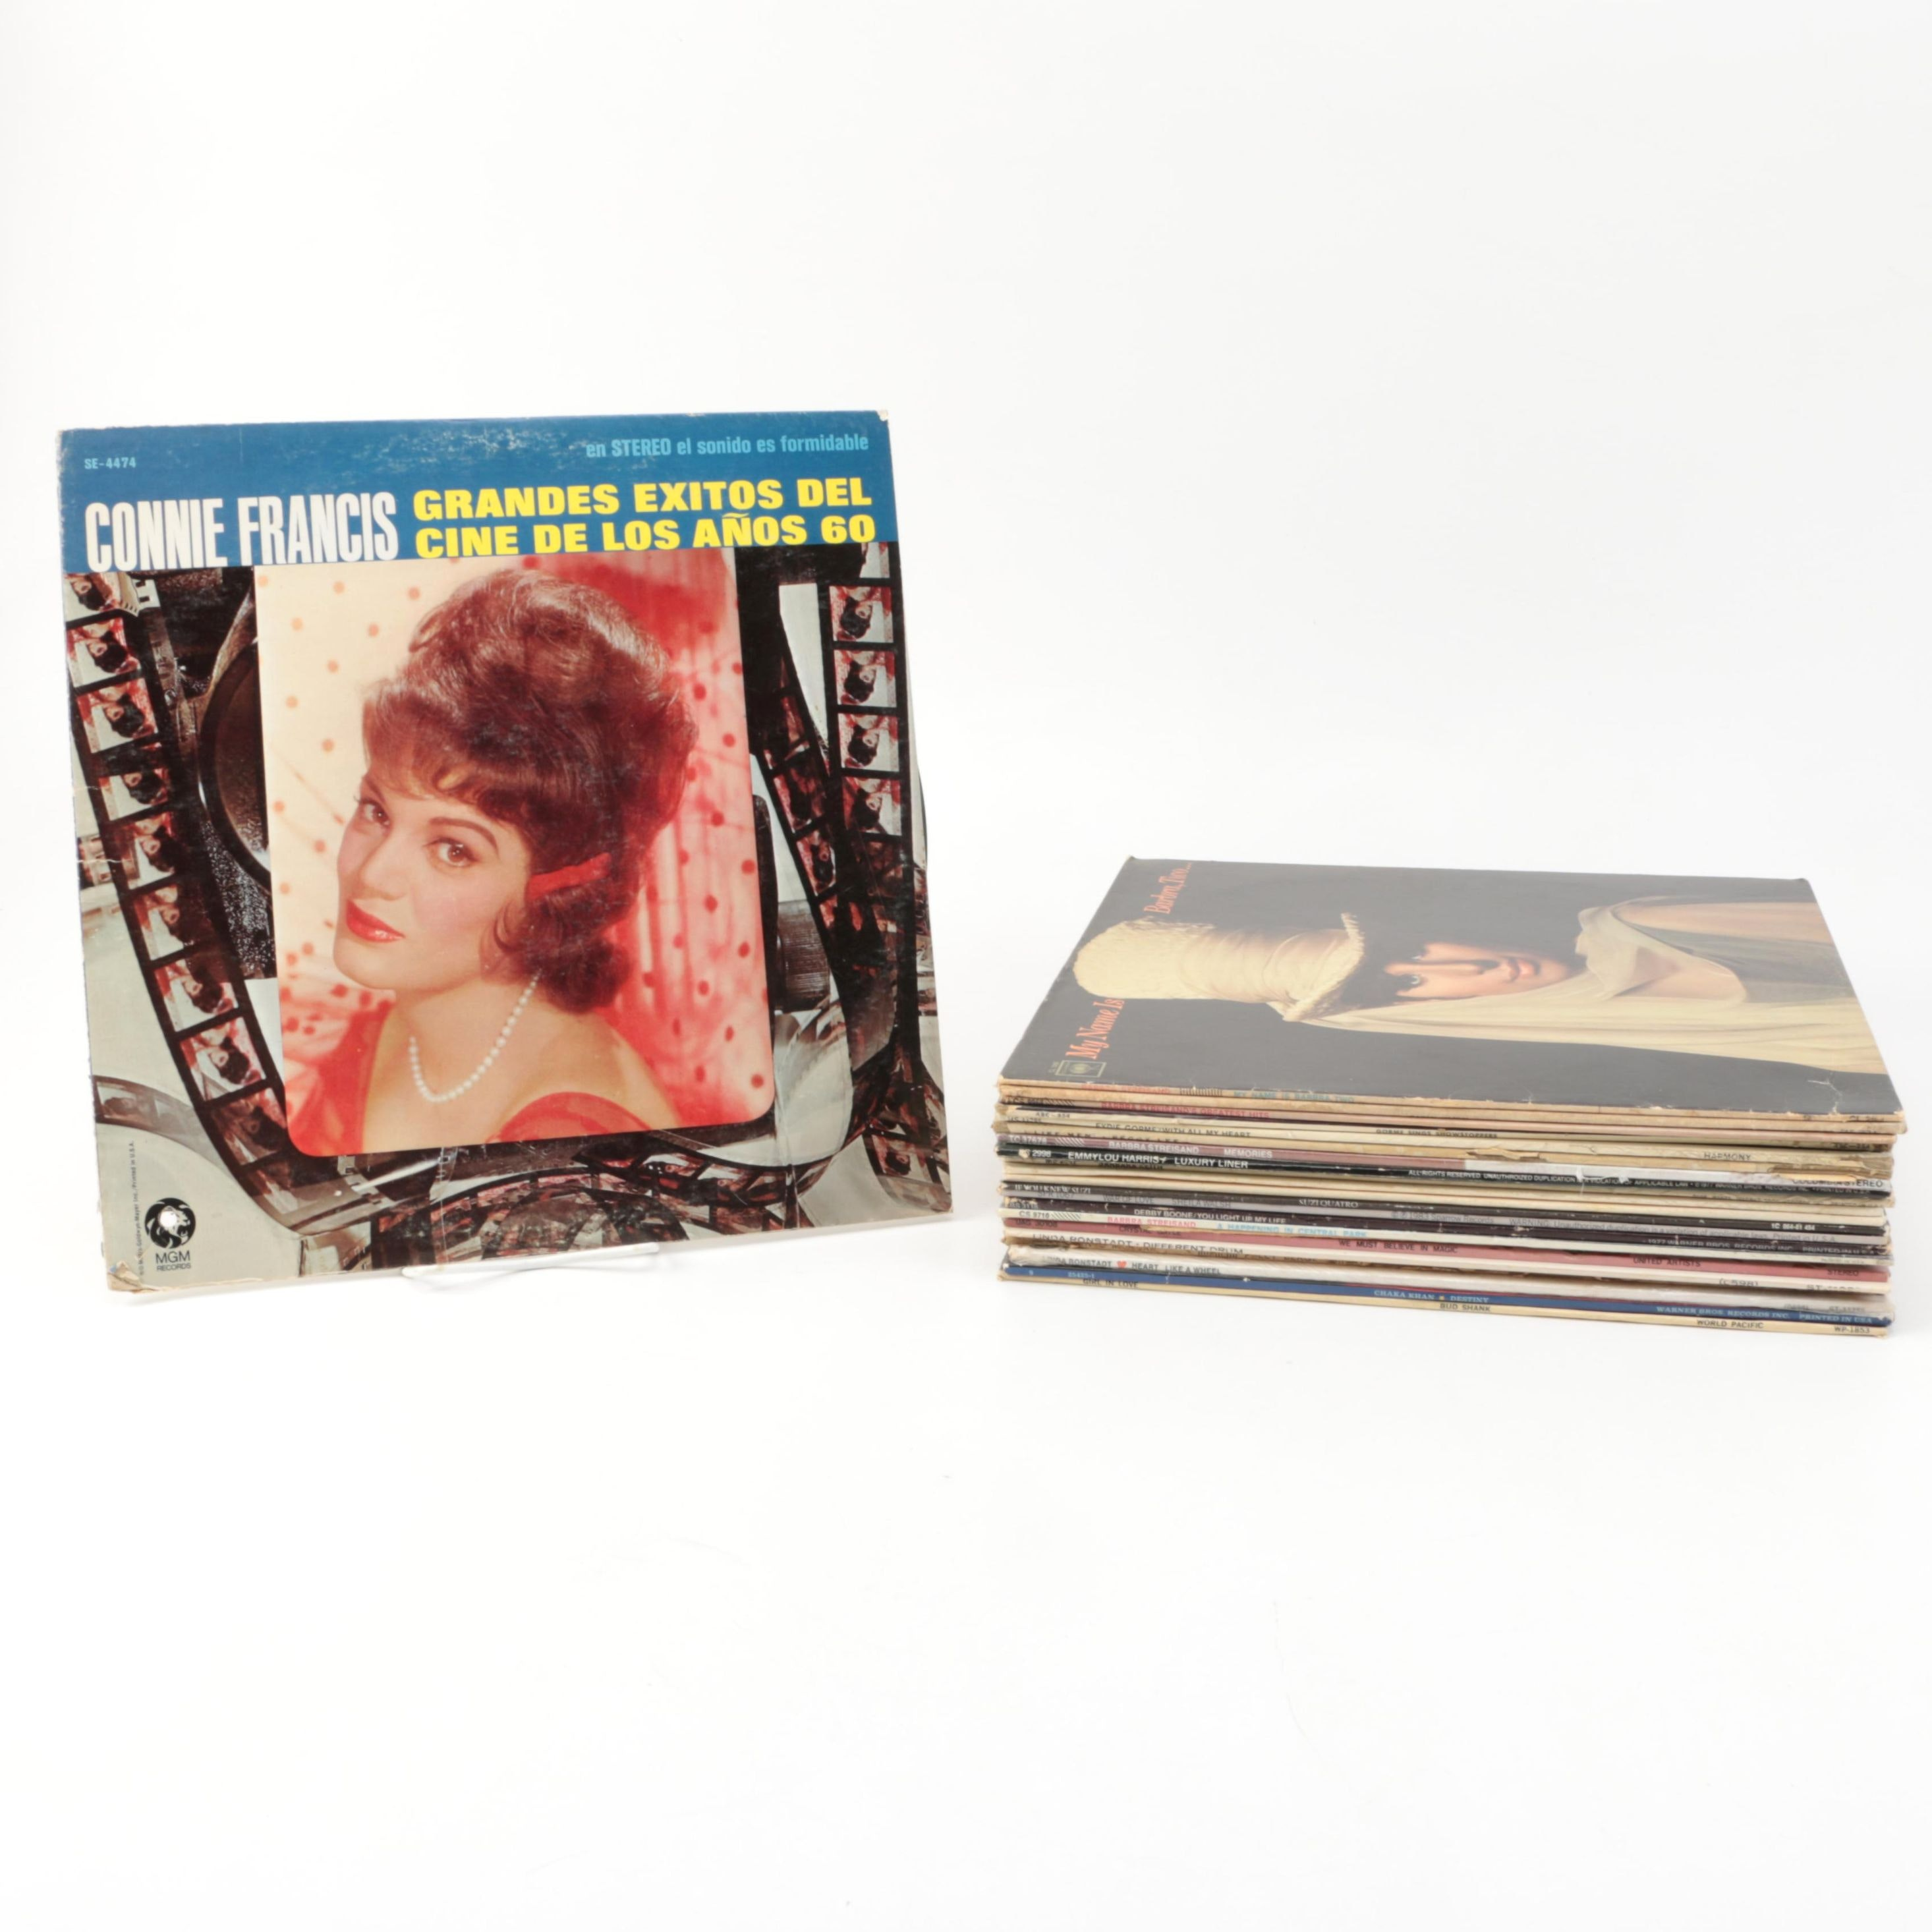 Collection of Vintage LPs by Female Artists